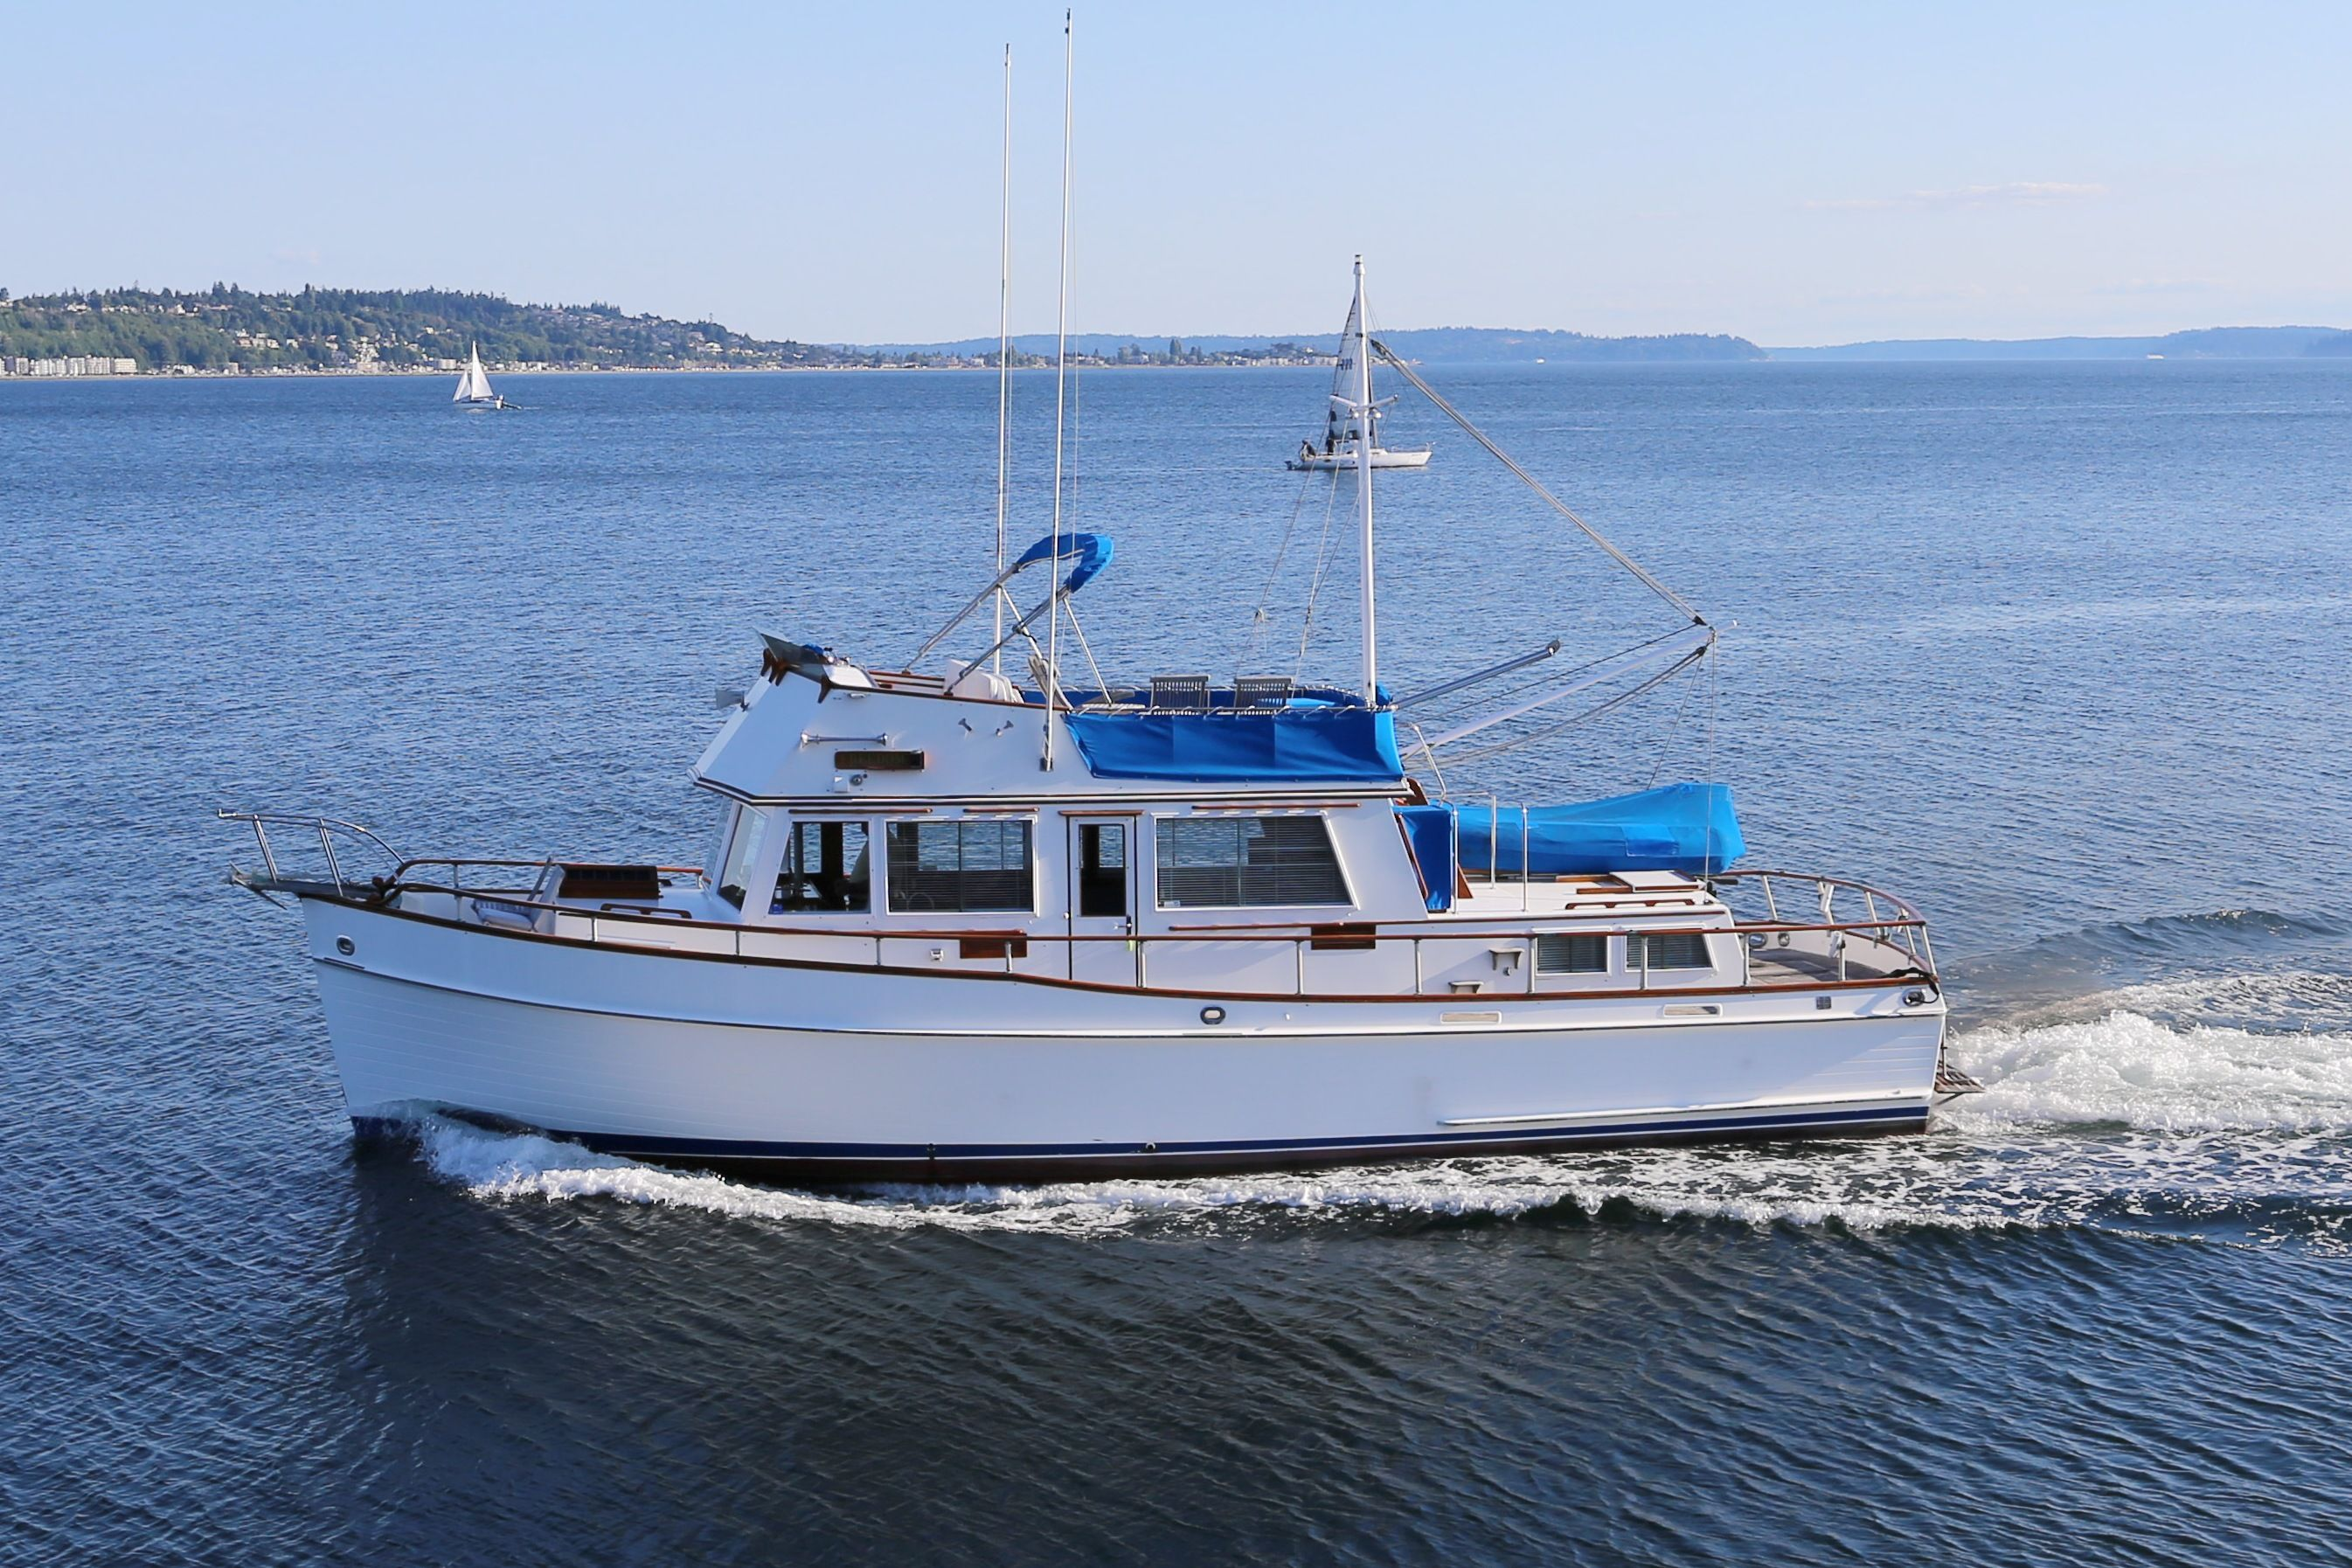 1976 Grand Banks 42 Classic For Sale In Seattle Wa Boatsforsale Trawlers Grandbanks Grand Banks Yachts Cool Boats Classic Boats